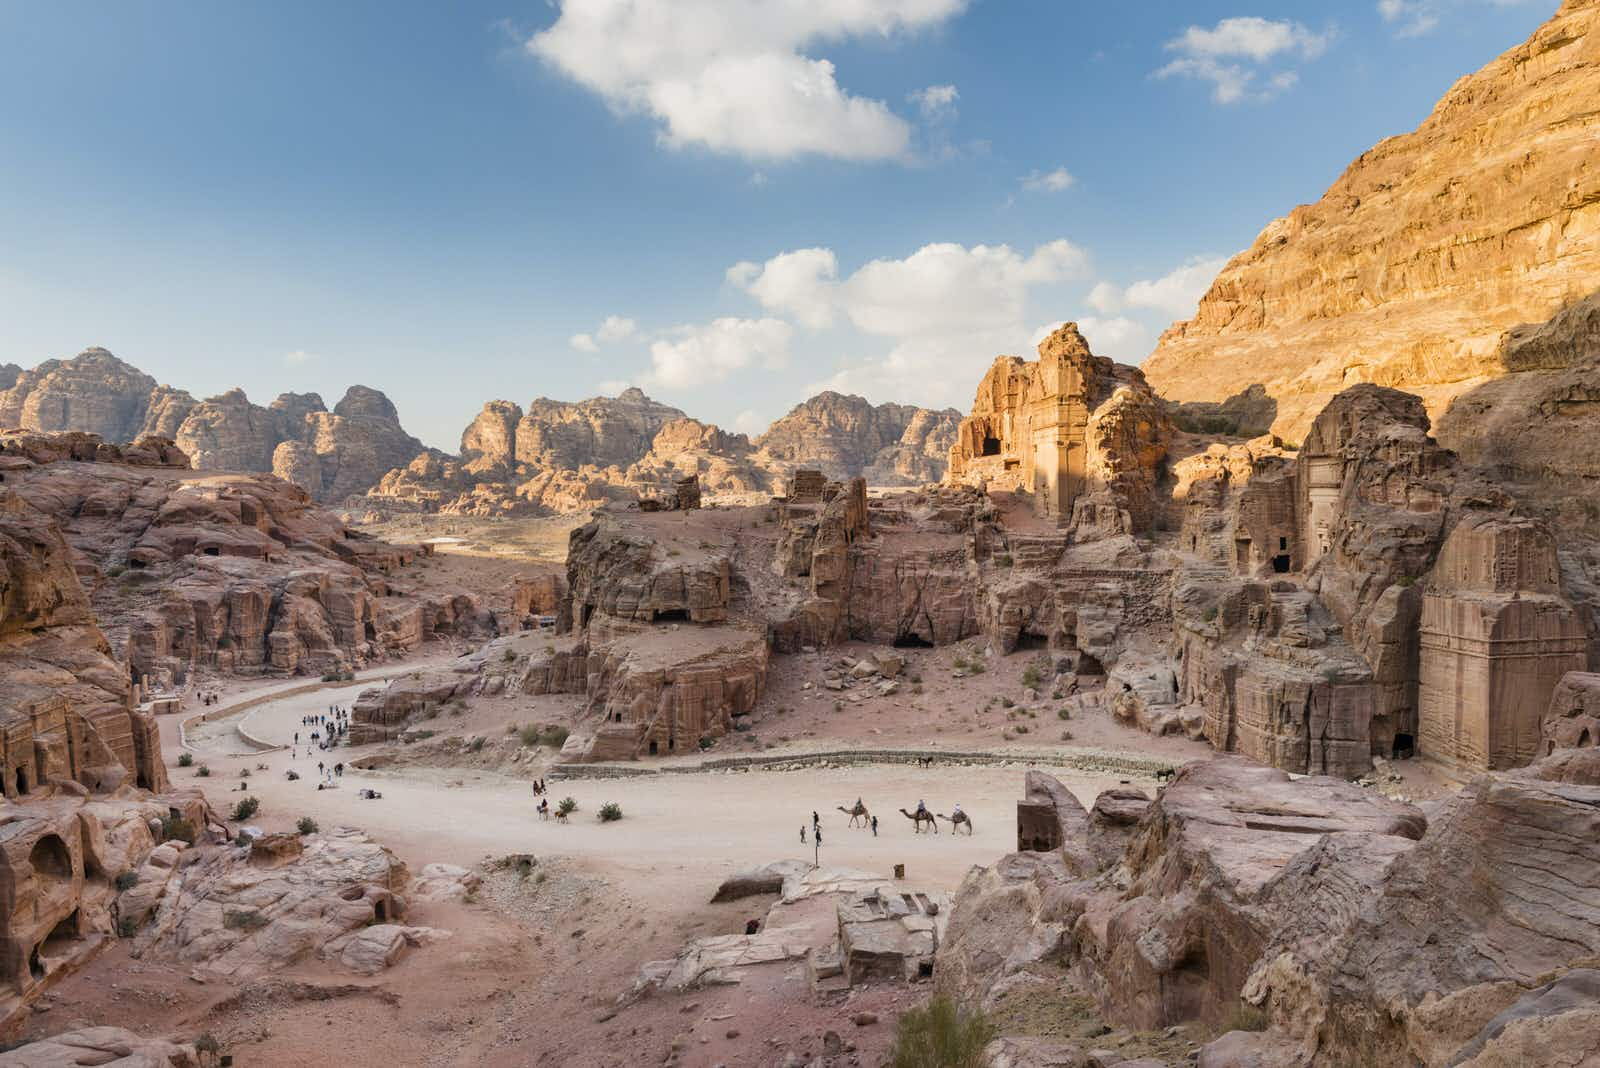 People explore the ancient ruins of Petra.